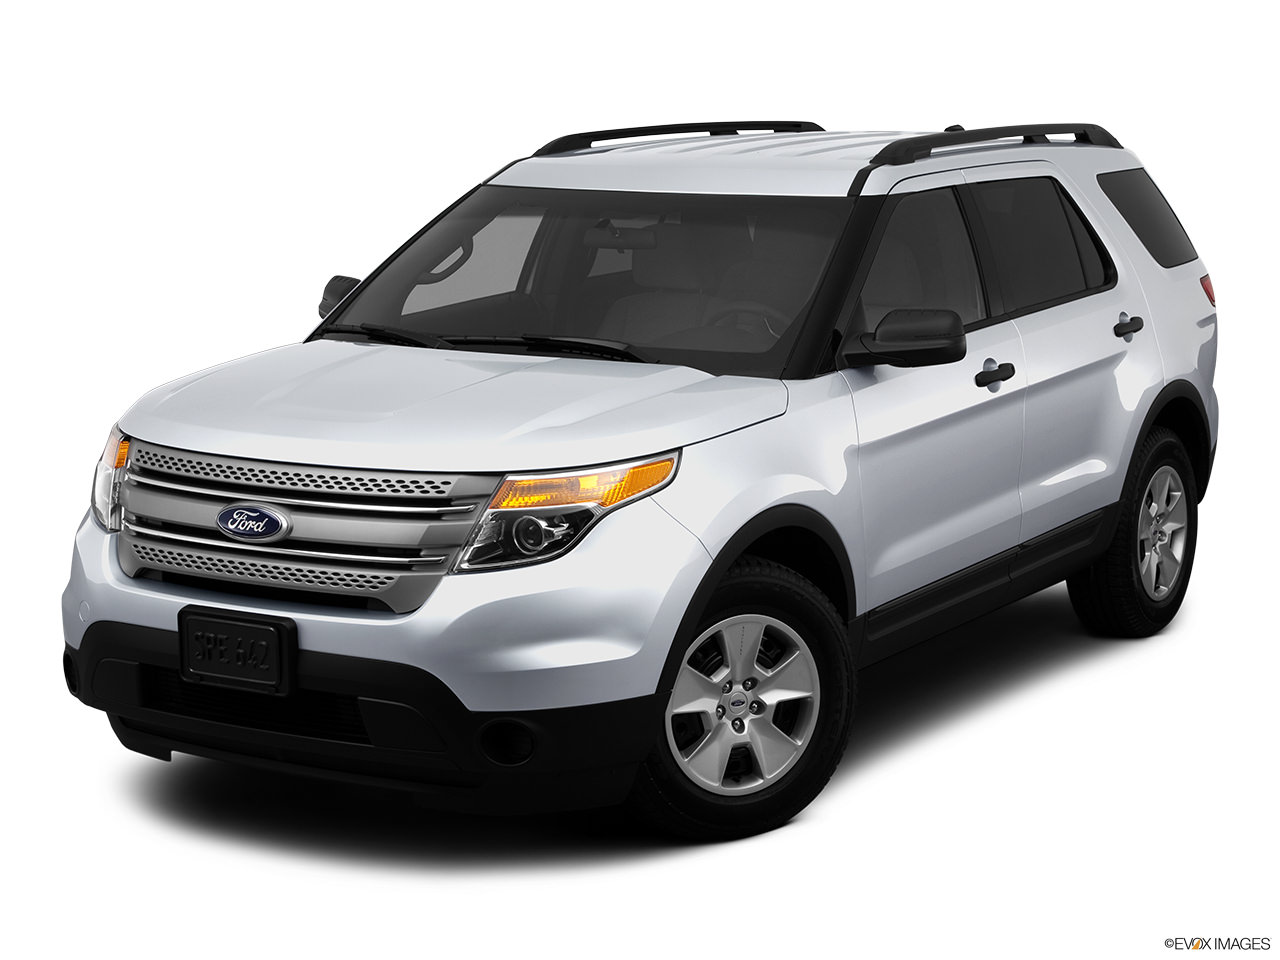 limited ford mint cond up dvd camera row back navigation rear vehicle seats grey explorer